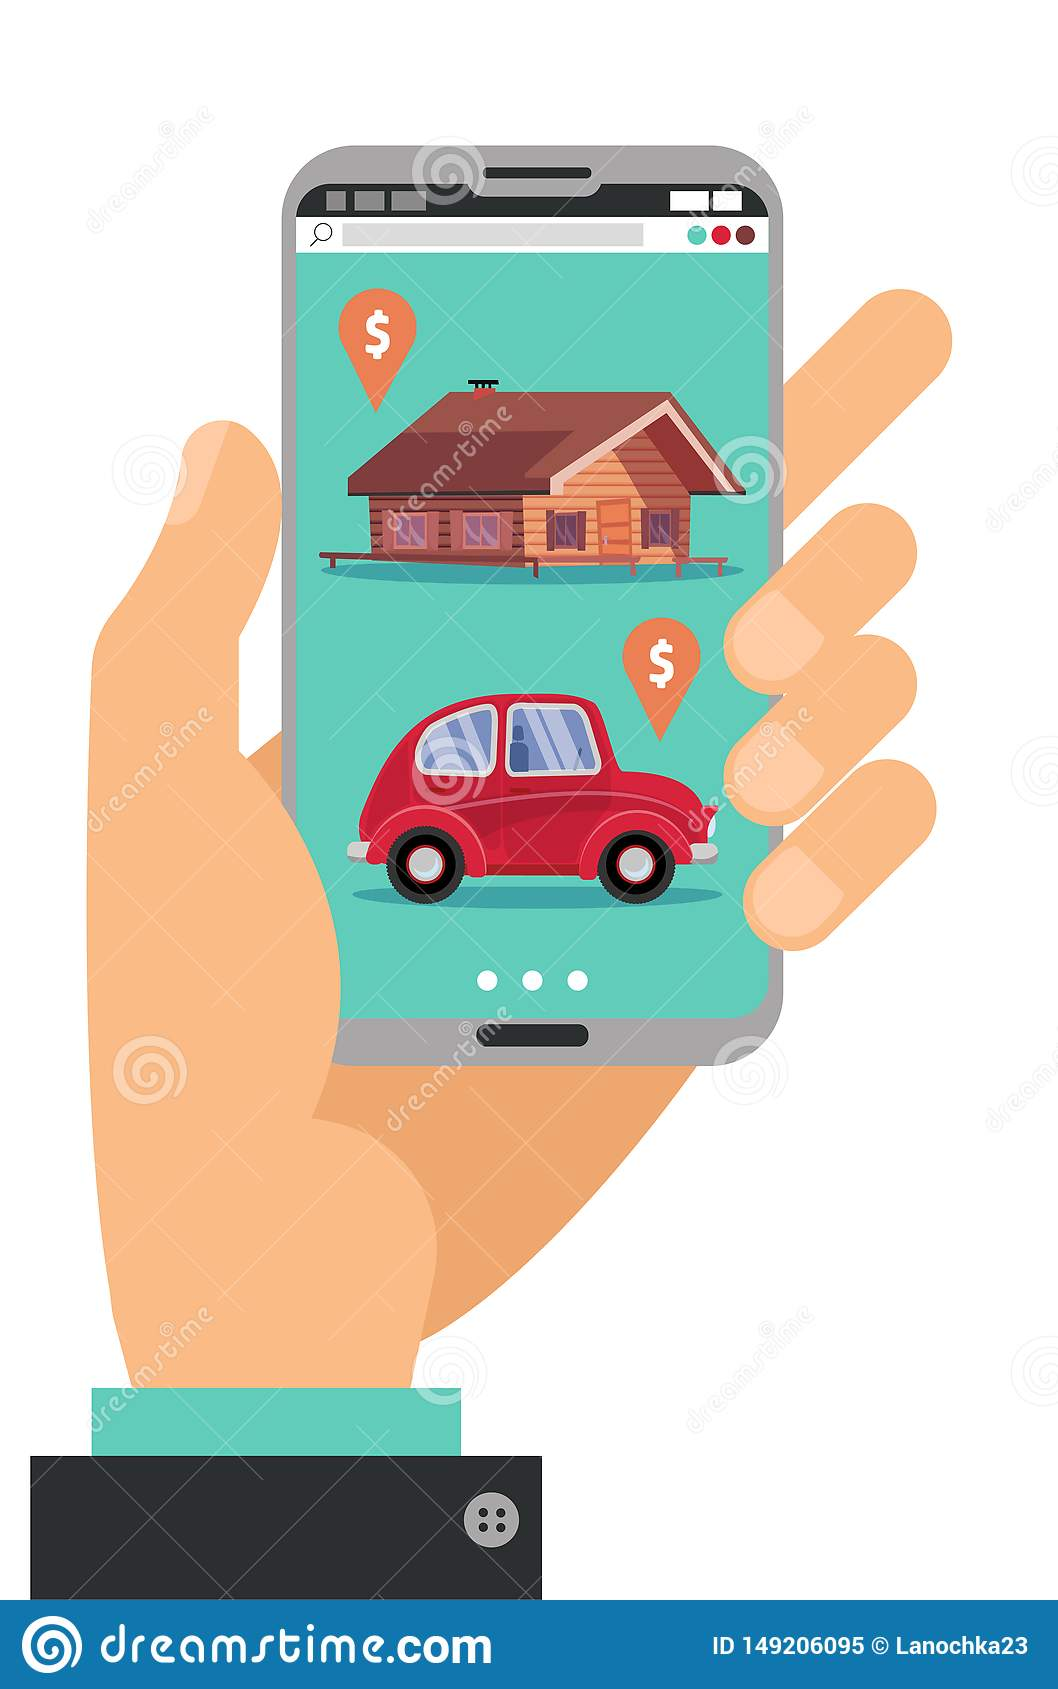 Hand holding smartphone. Concept of hand with mobile phone with realty, car sales marketplace application featuring house and